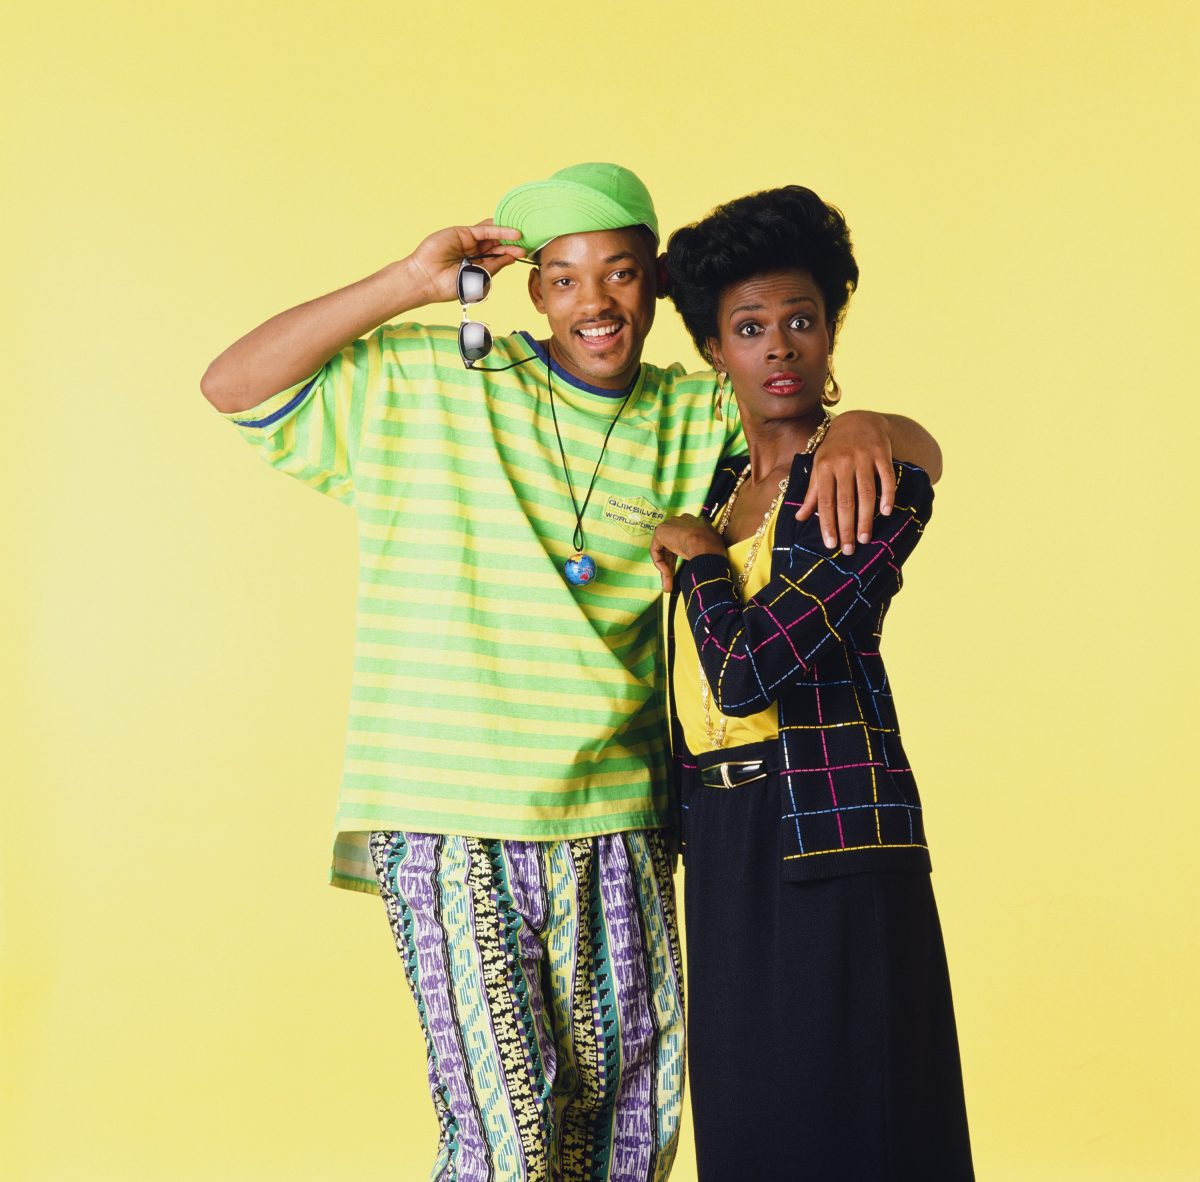 Will Smith and Janet Hubert in 'The Frresh Prince of Bel-Air'